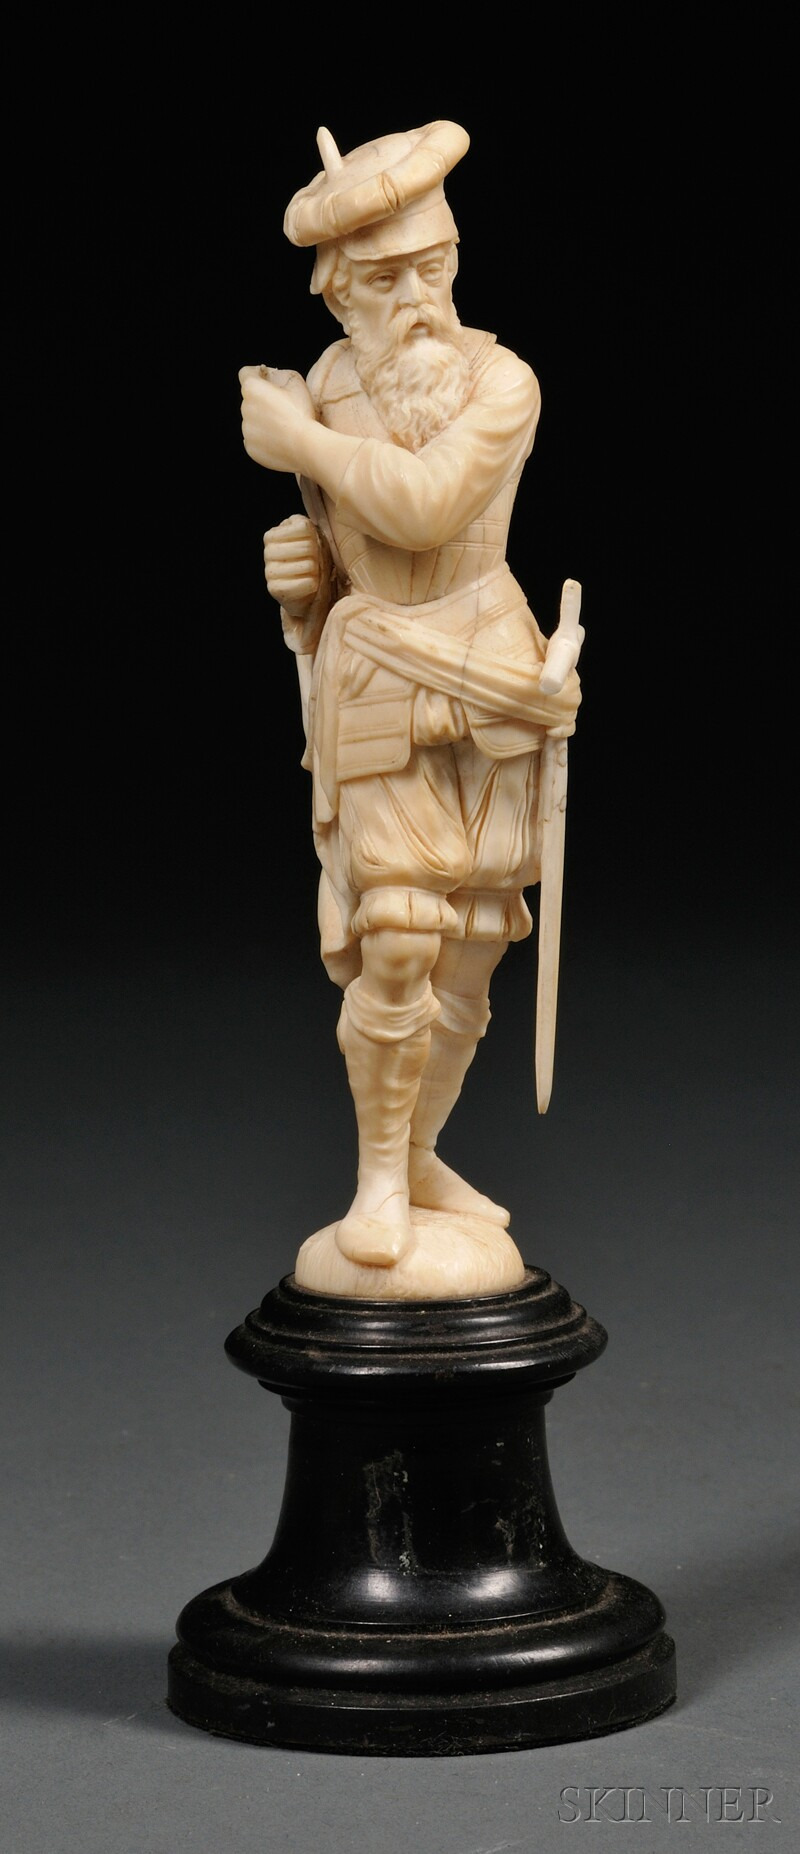 Carved Ivory Figure of a Man with a Sword